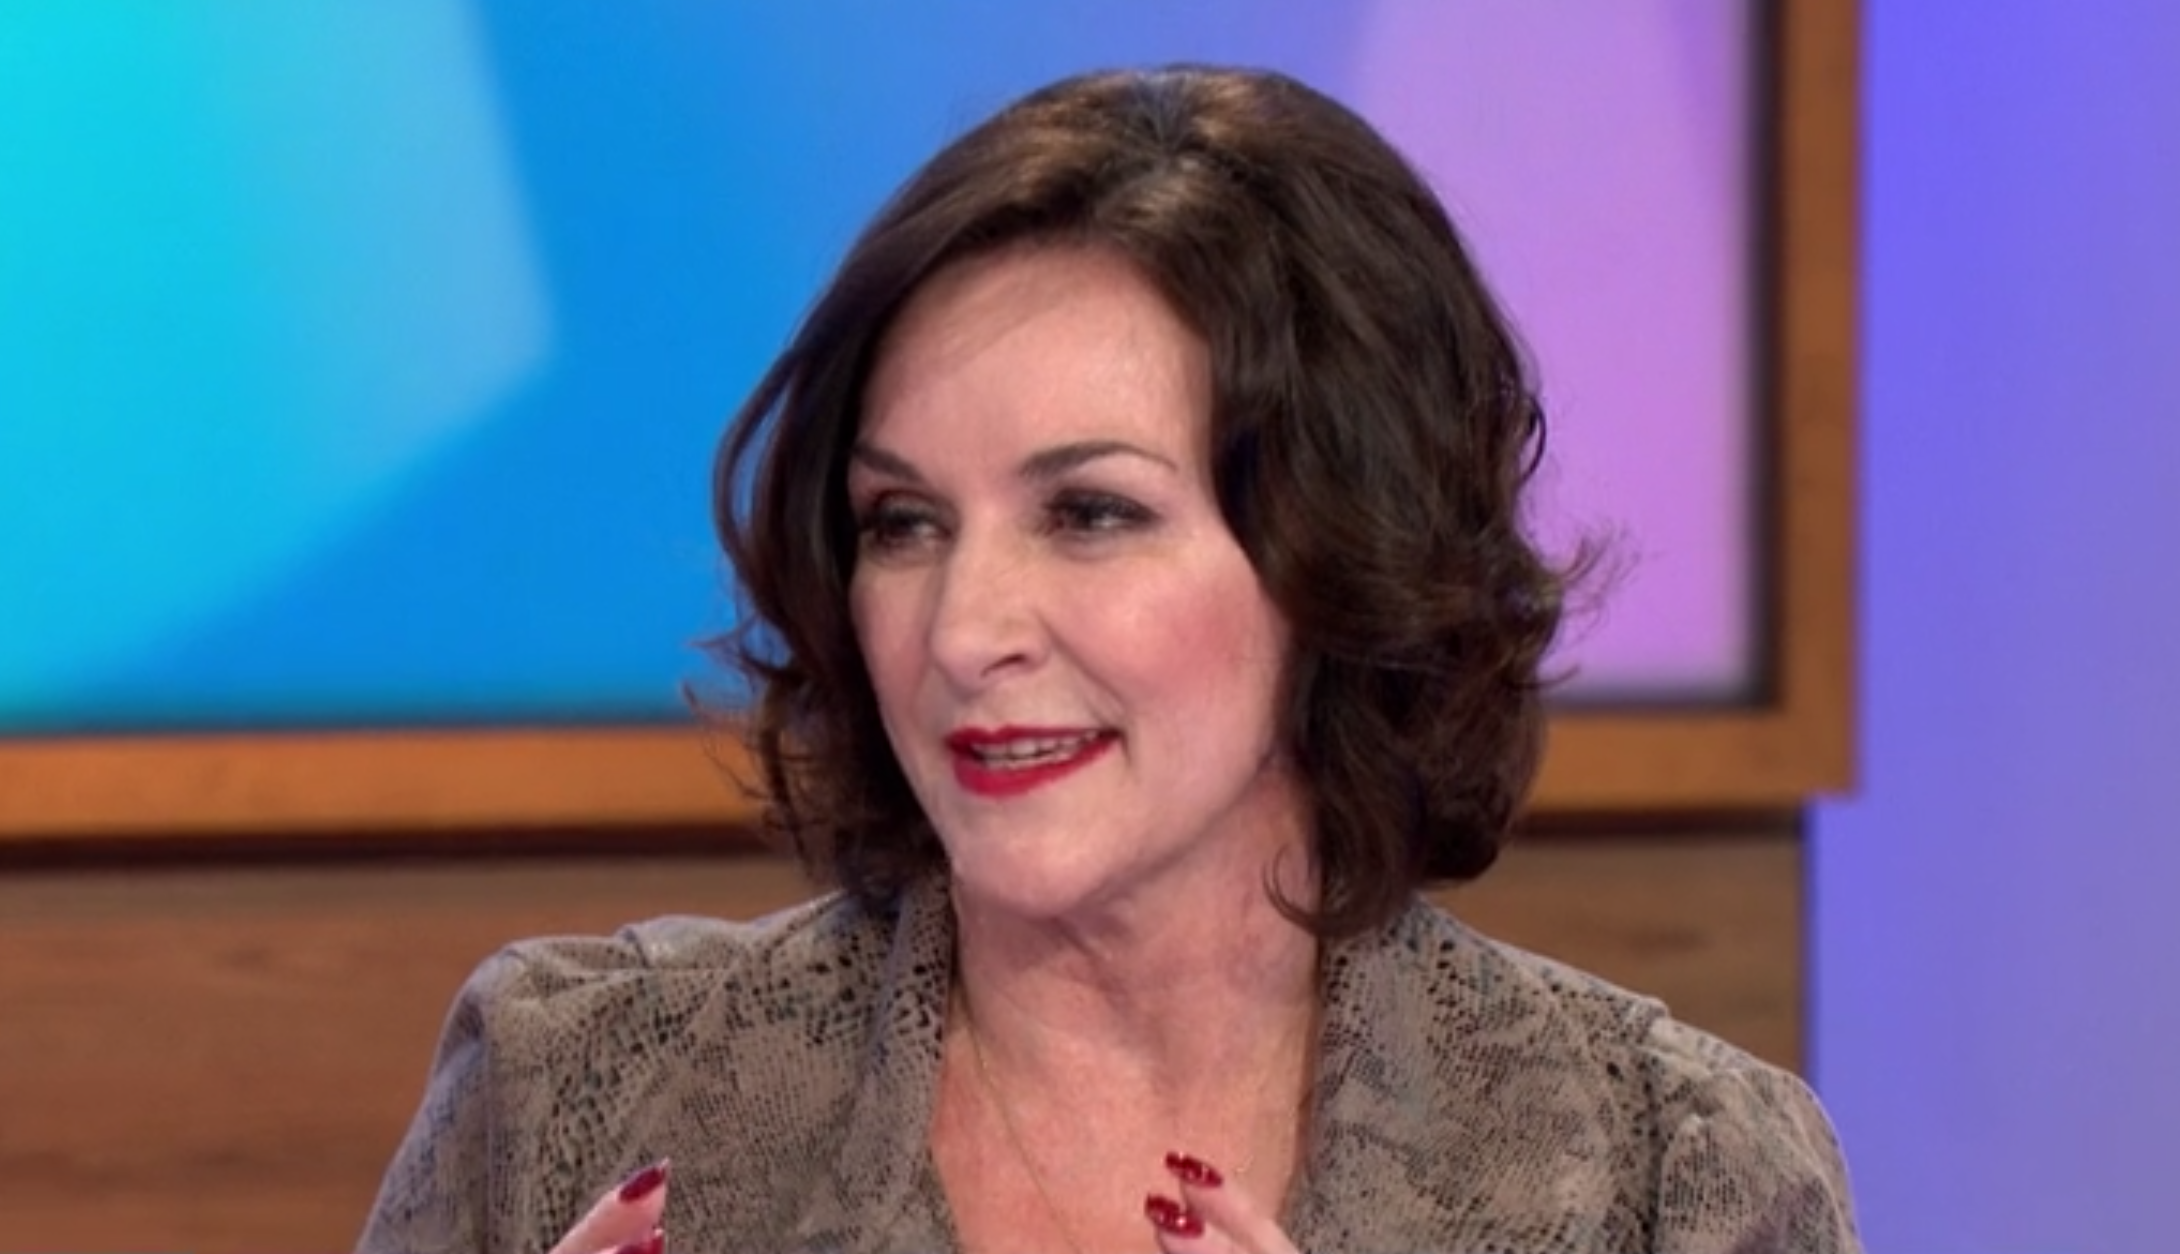 Shirley Ballas reveals she has discussed adoption with boyfriend Daniel Taylor